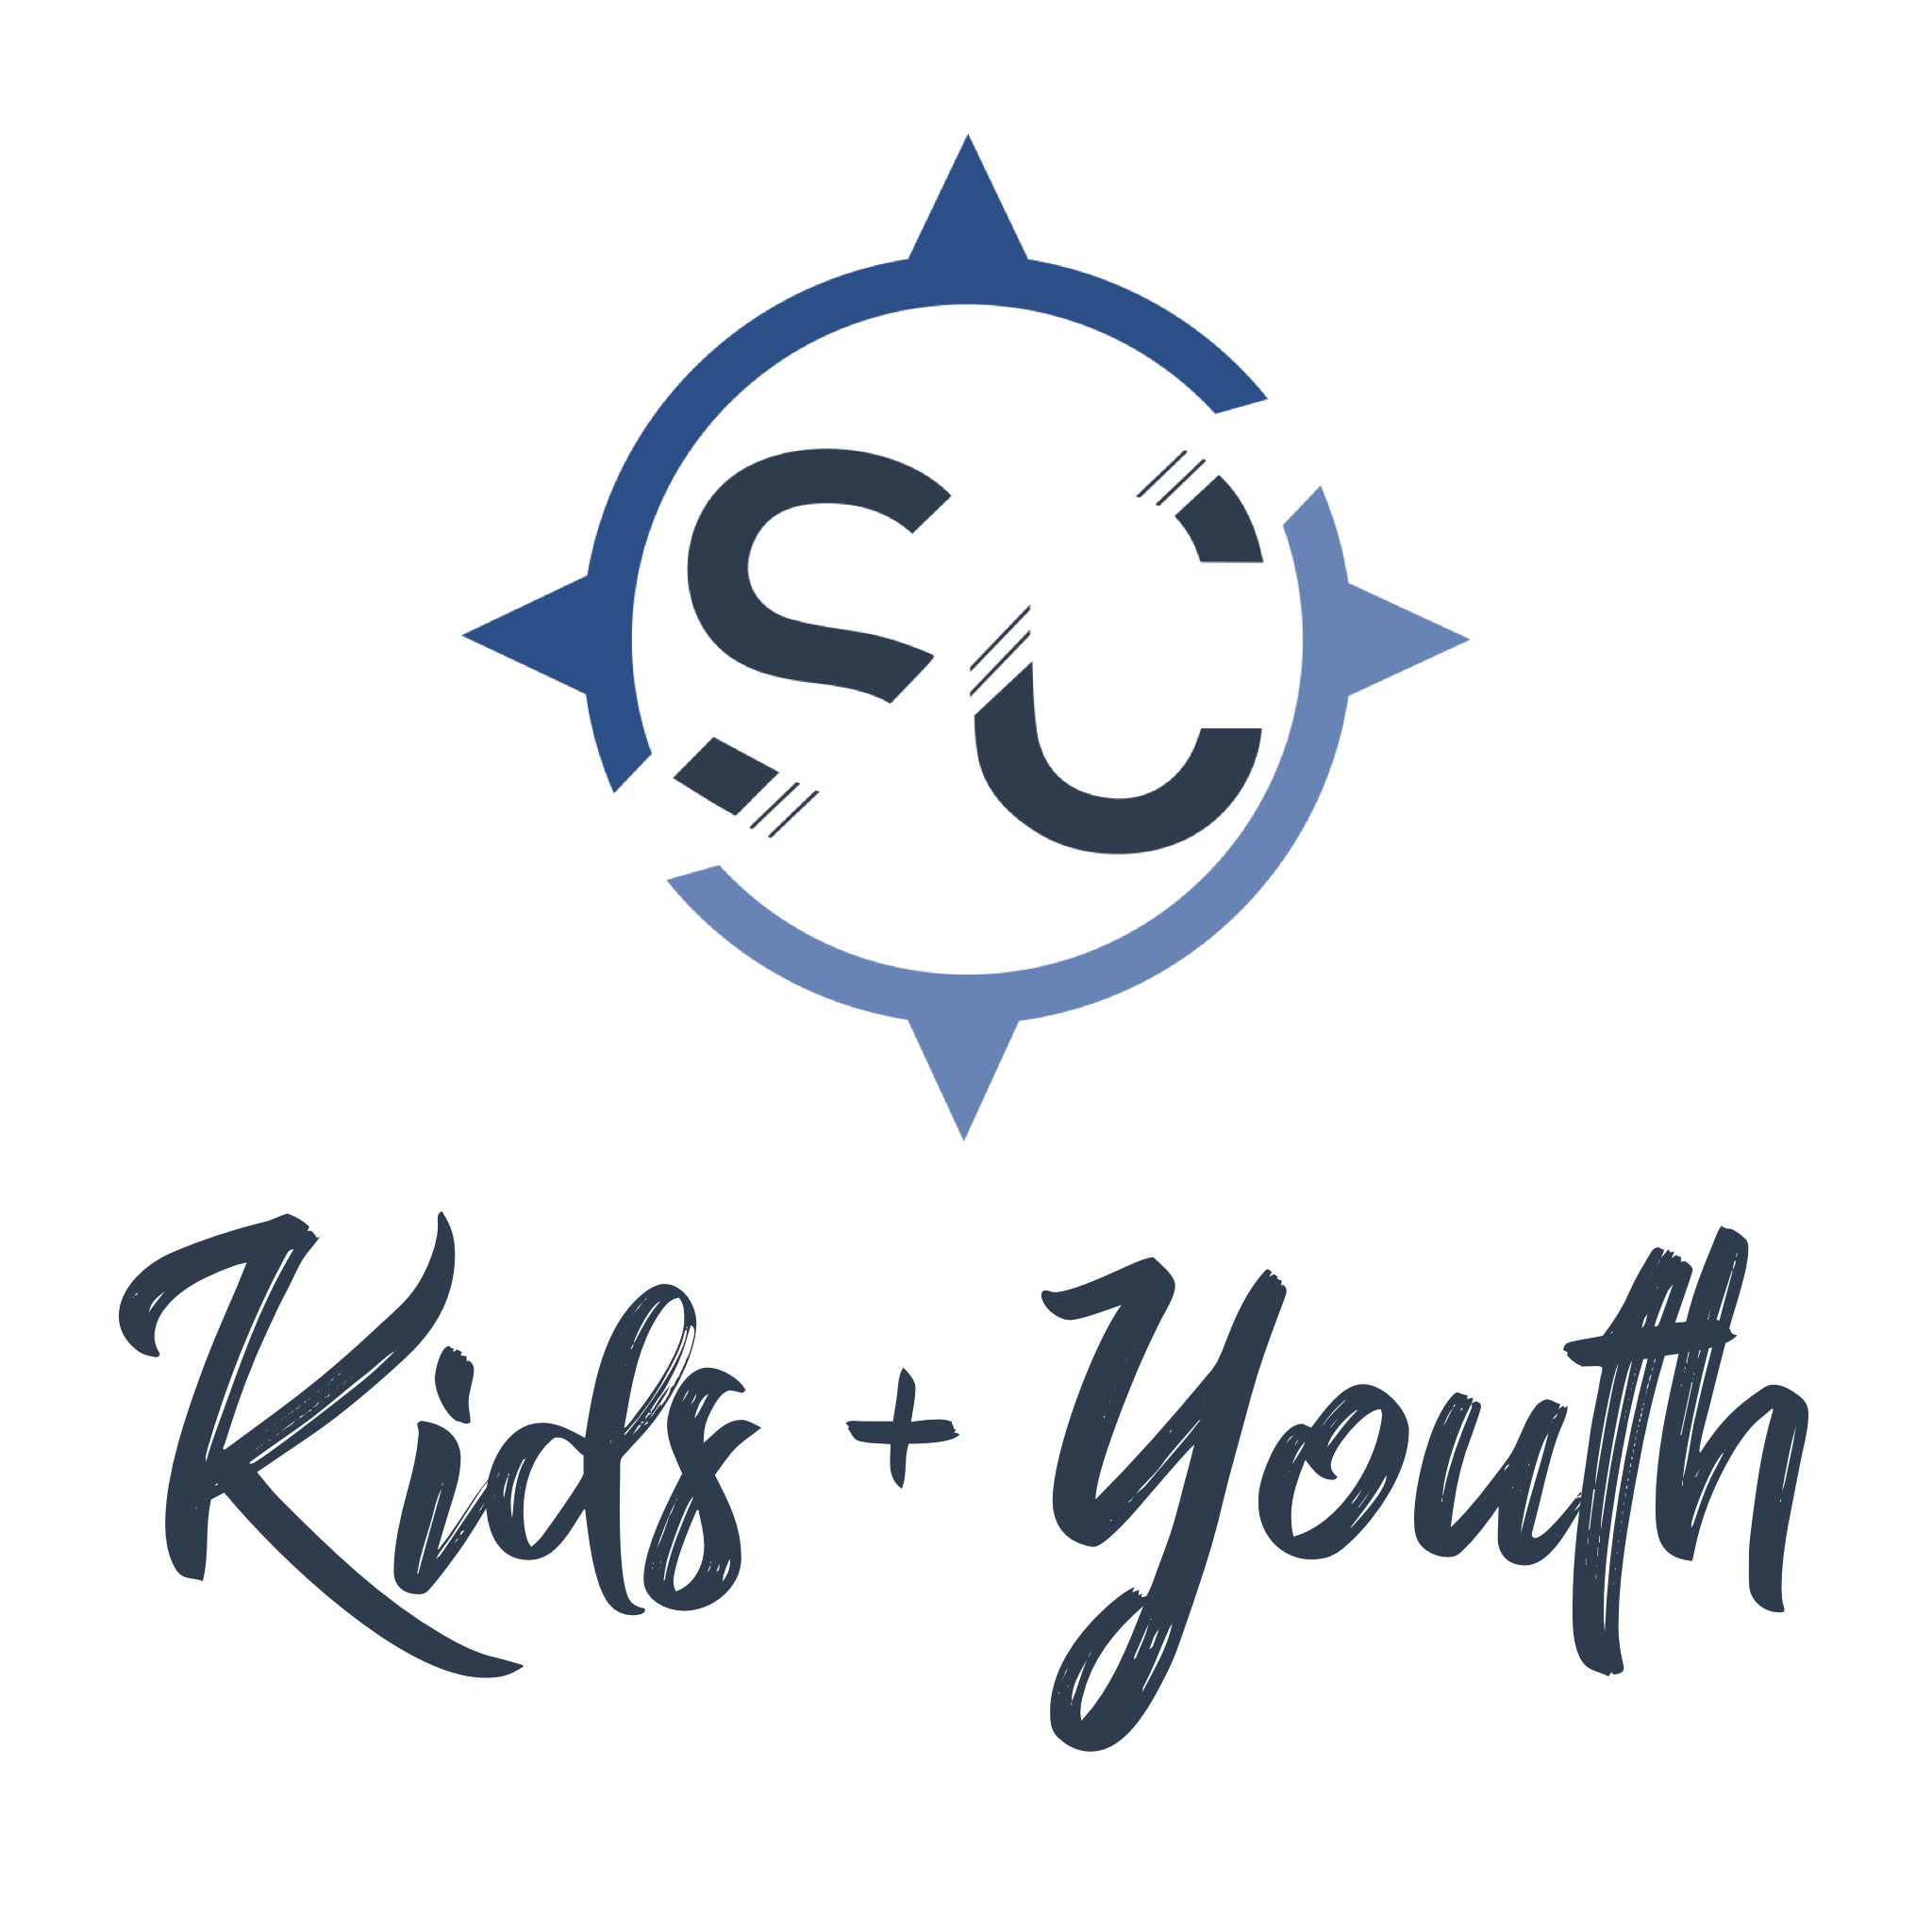 kids-youth color logo.PNG